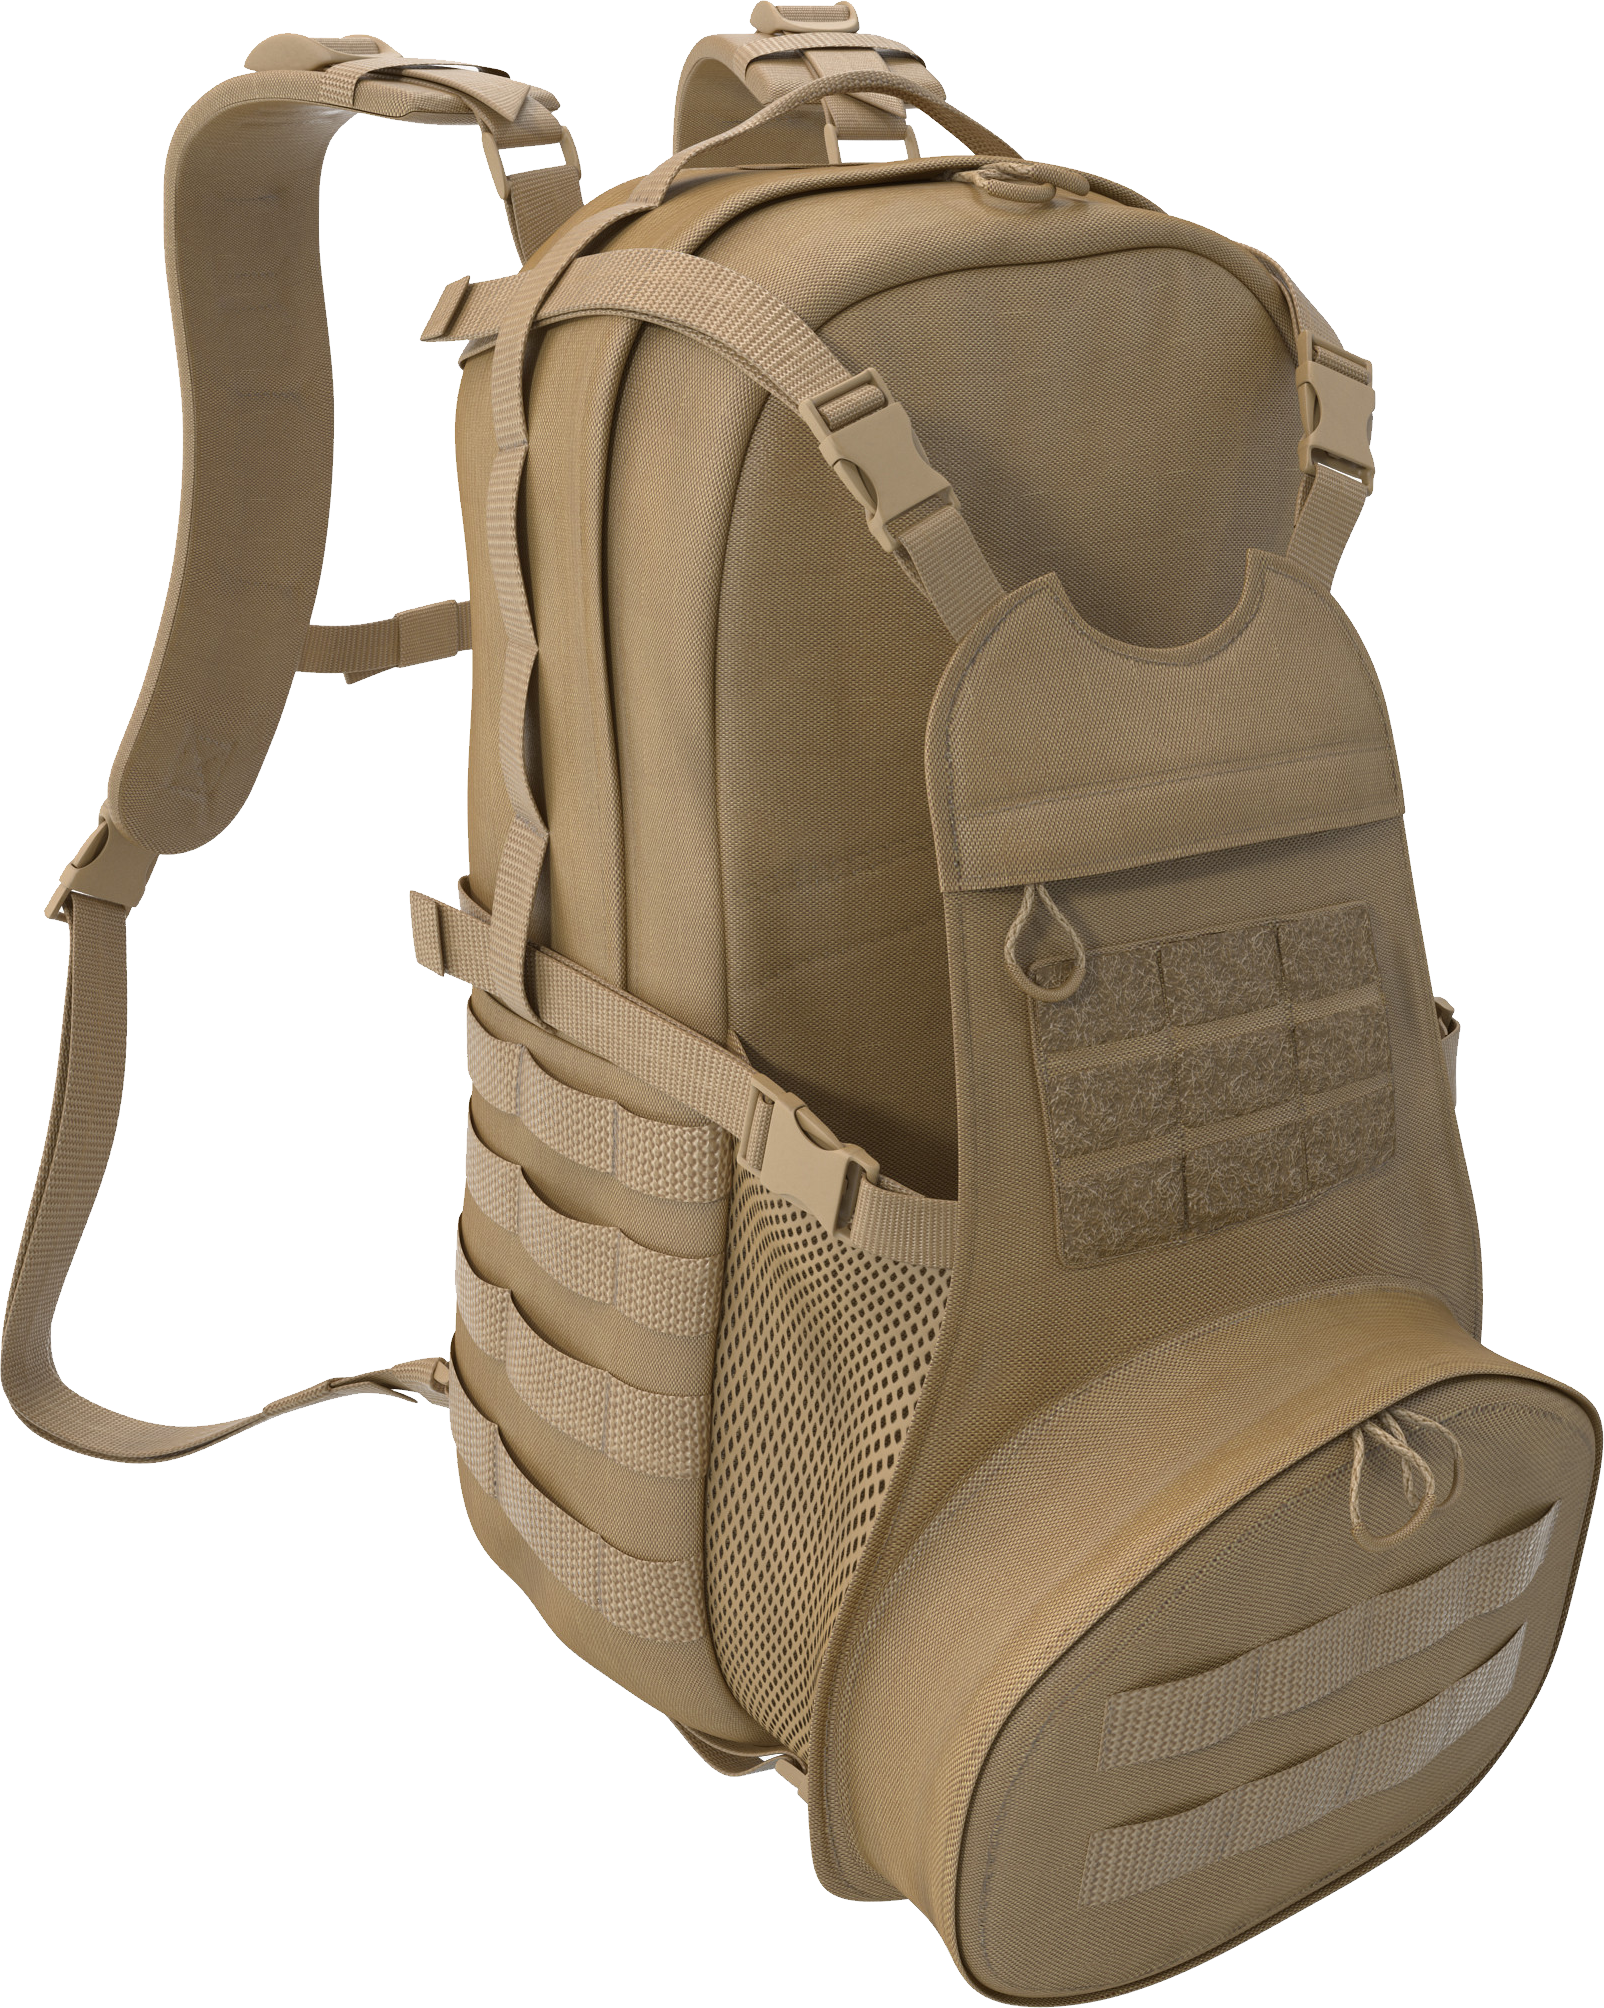 Military backpack PNG image